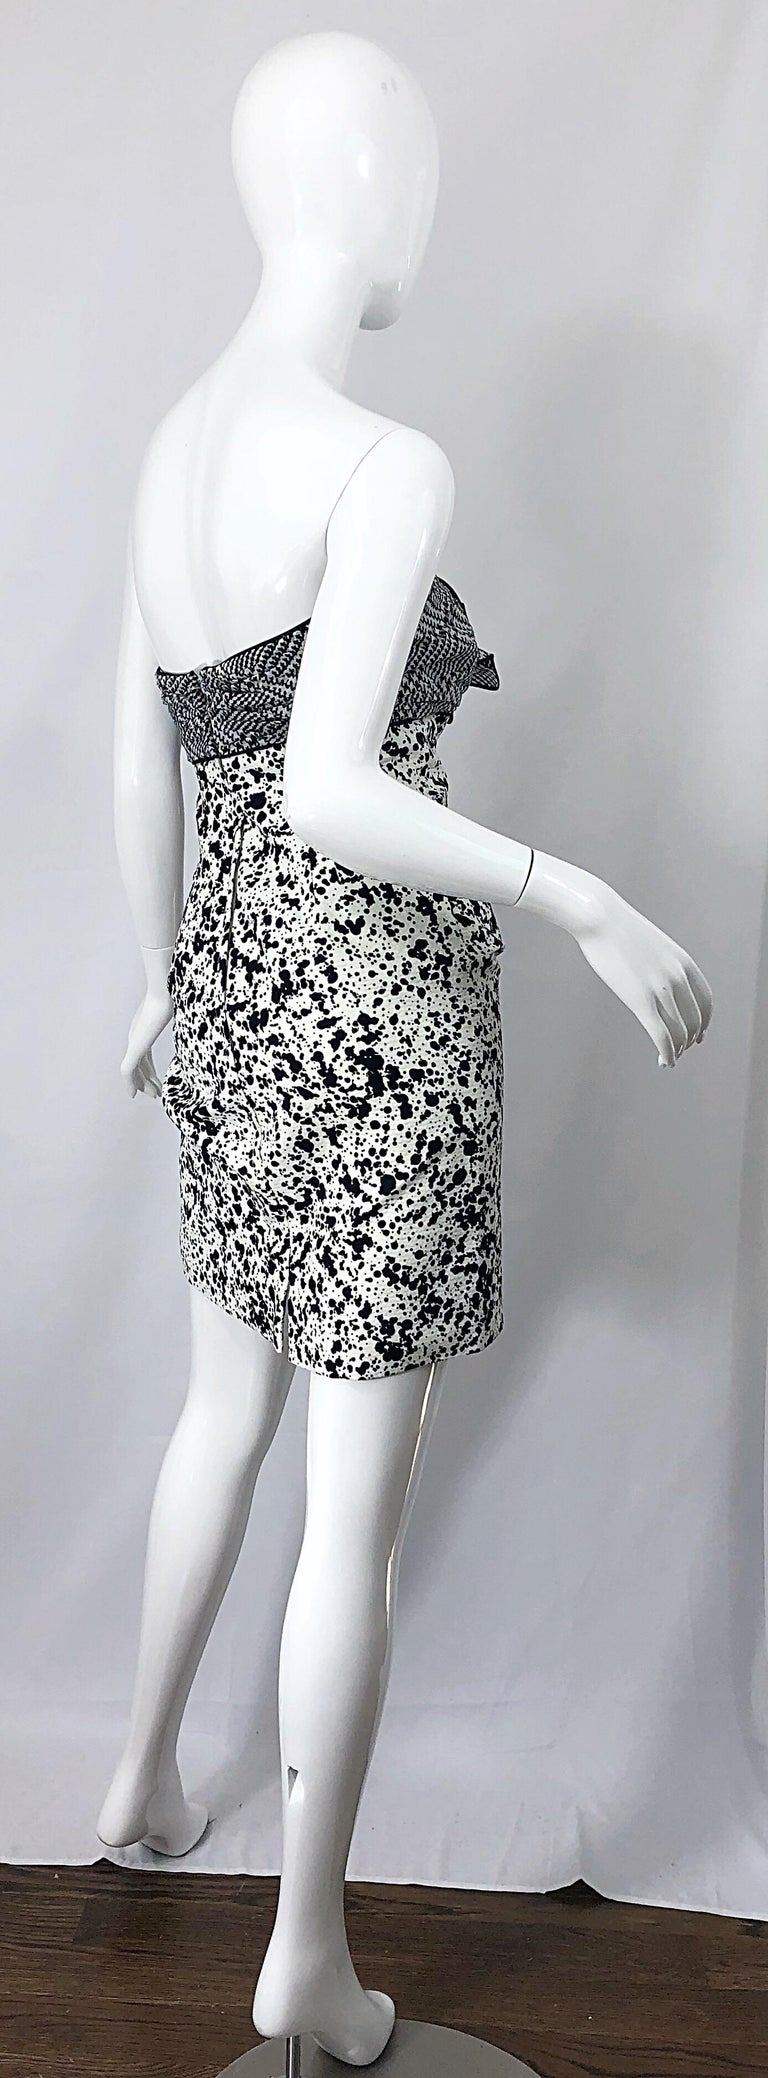 1990s Patricia Rhodes I Magnin Size 6 Black and White Vintage Strapless Dress For Sale 8